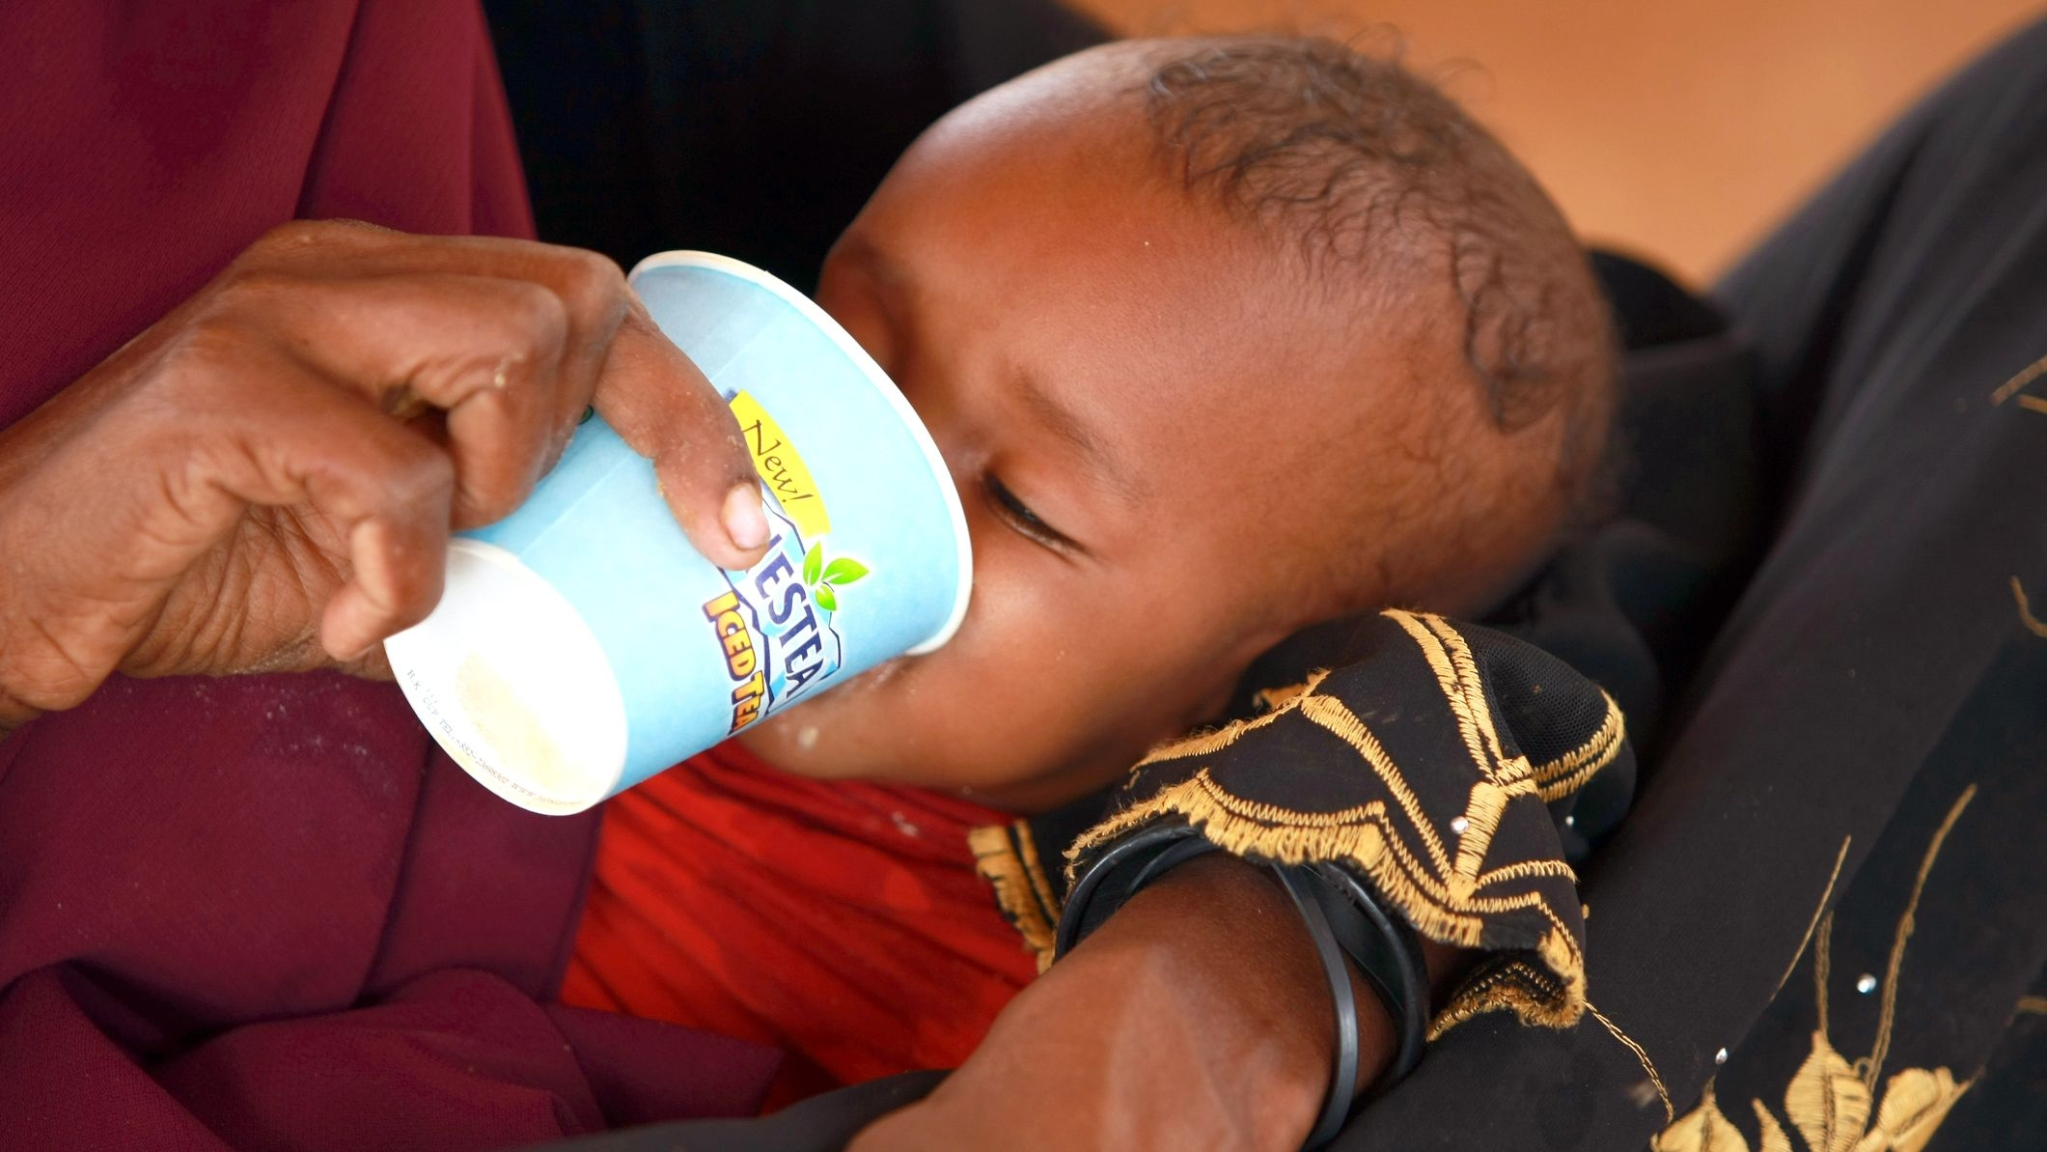 'Over 200 Million Children Undernourished or Overweight' :UNICEF